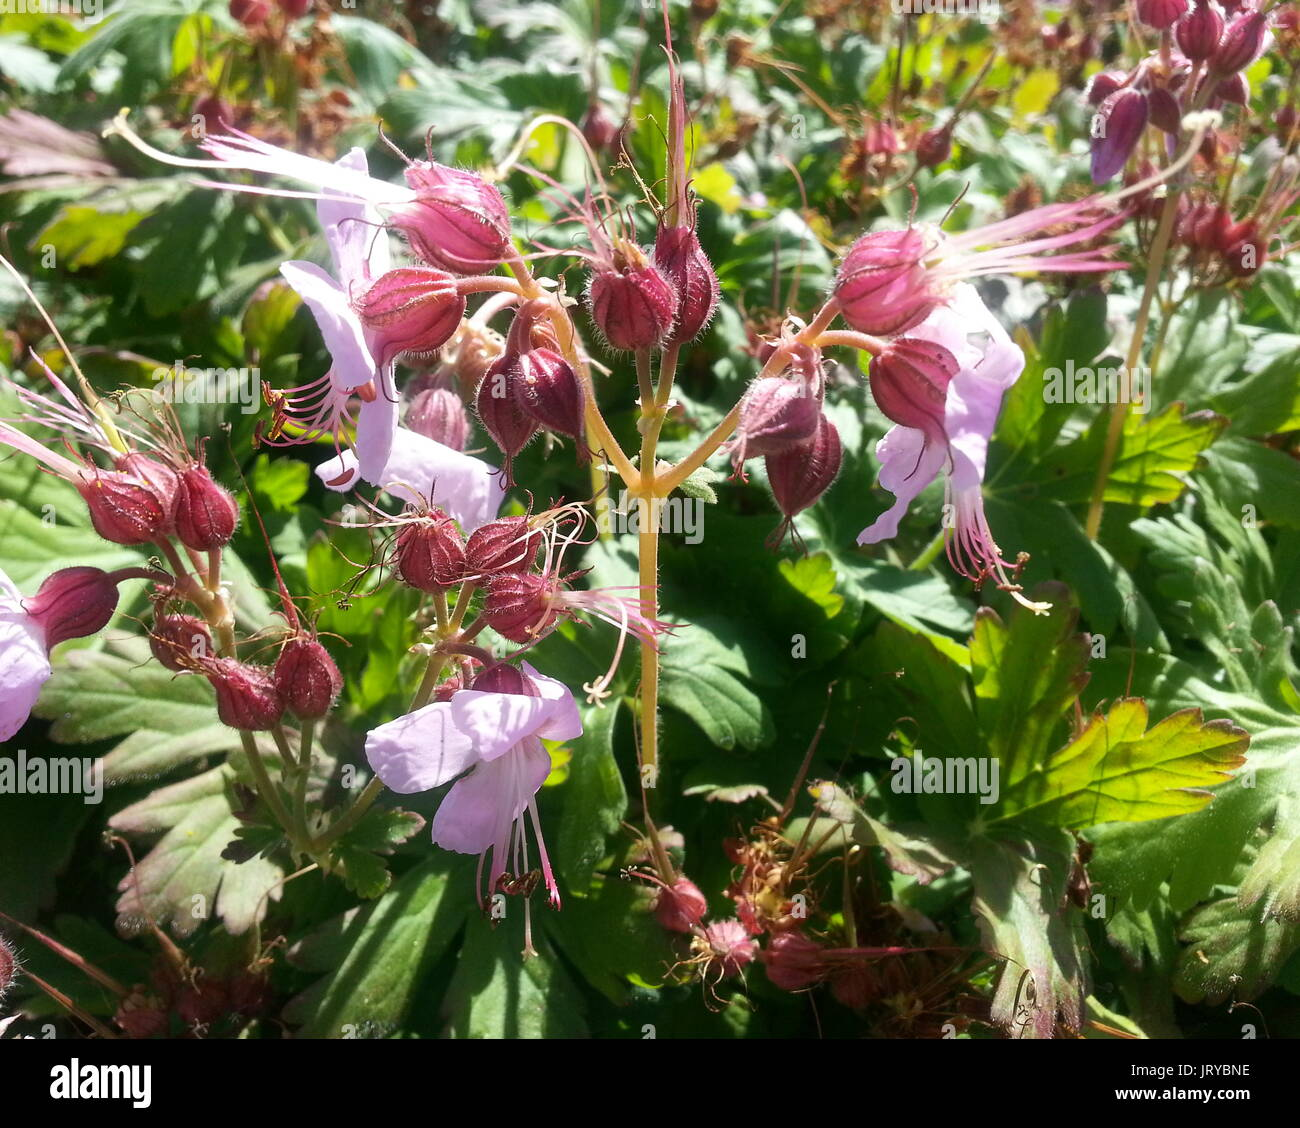 Small Pink Flowers - Stock Image